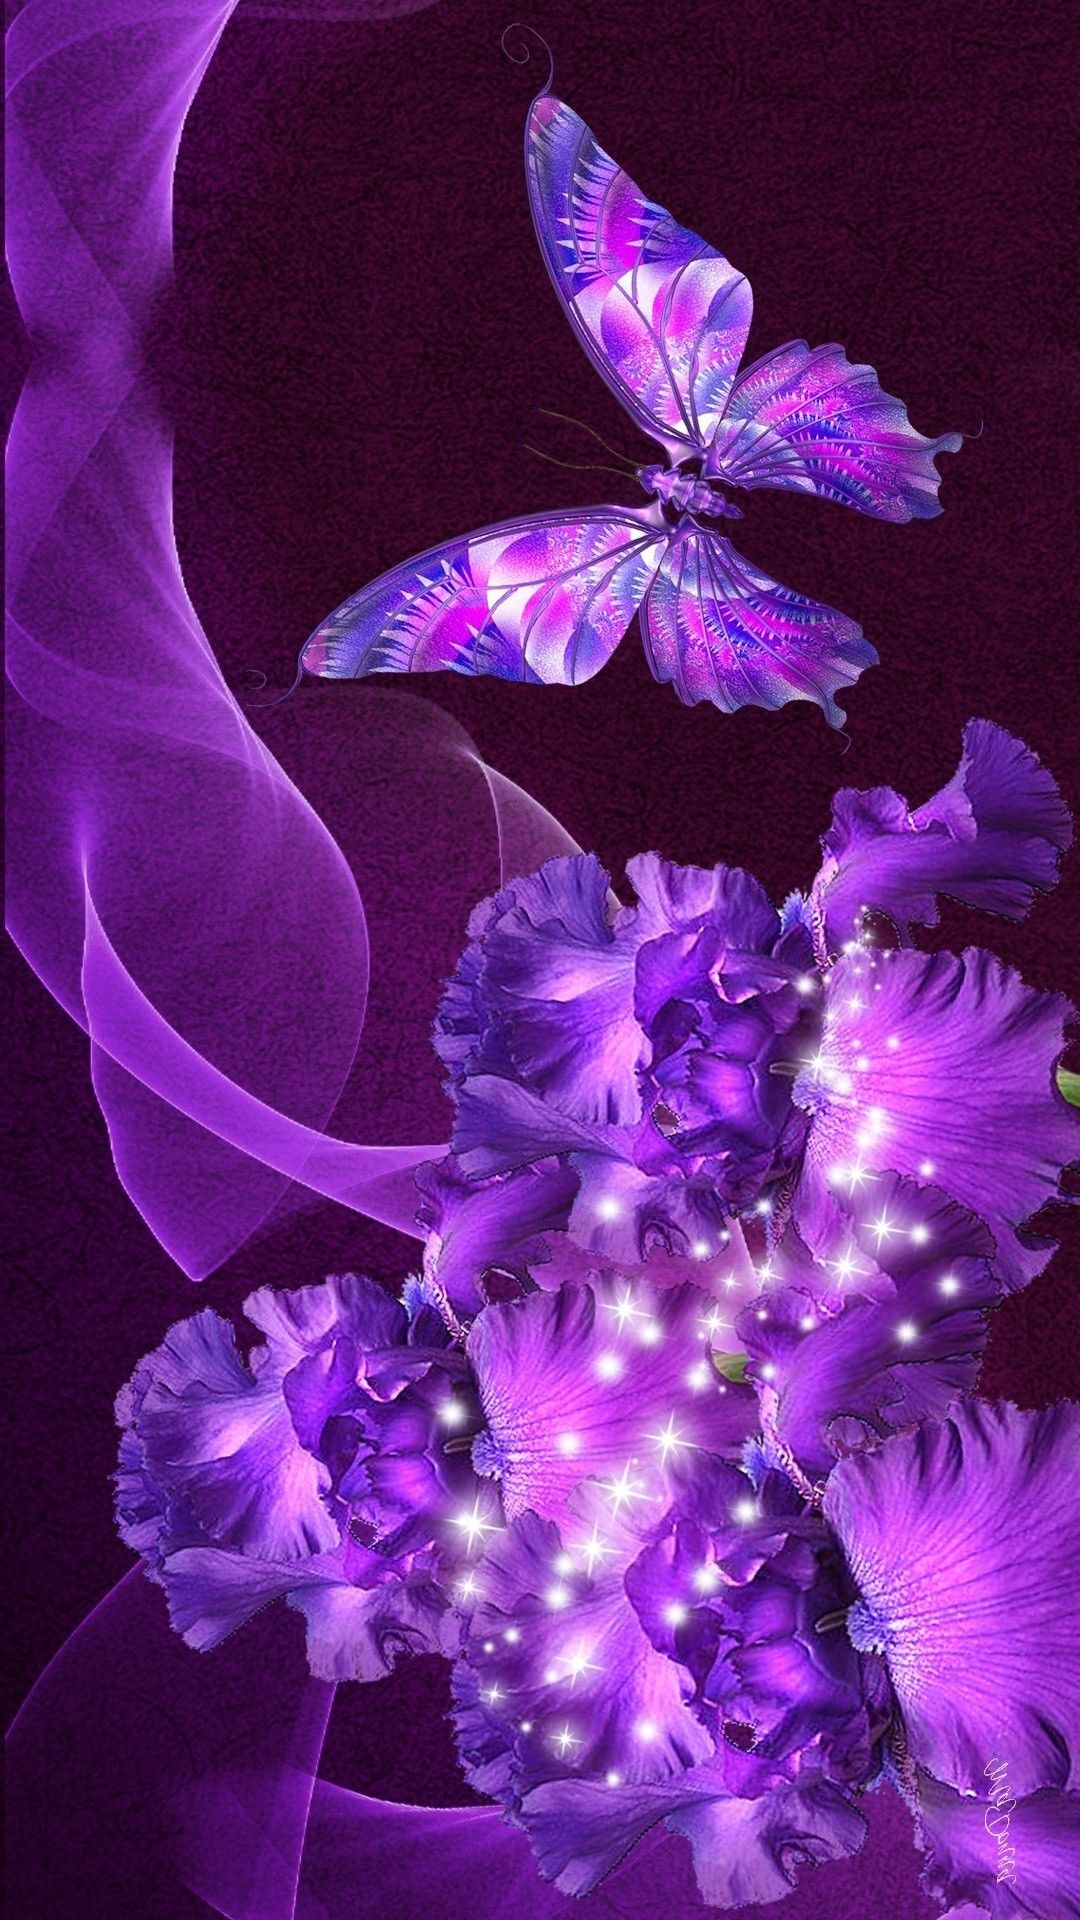 Wallpaper Purple Butterfly Mobile Best HD Wallpapers 1080x1920